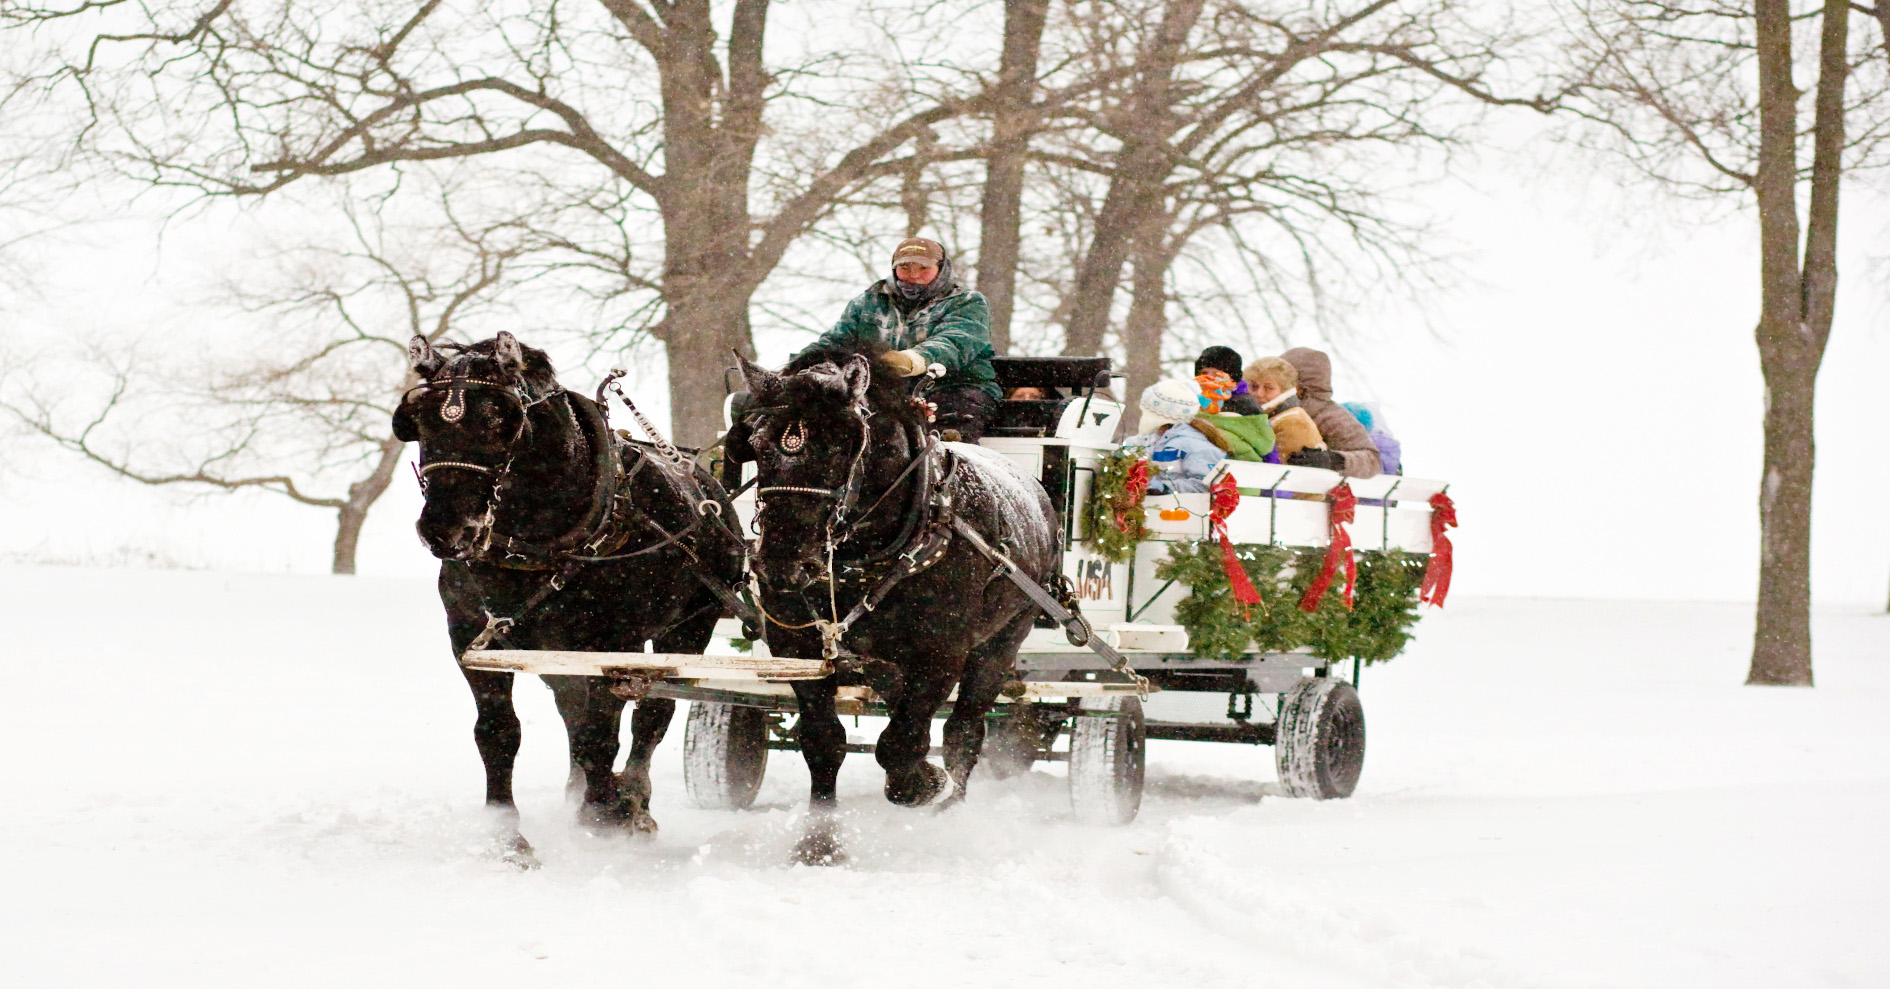 Deck the Halls-horse-wagon-home page banner027.JPG